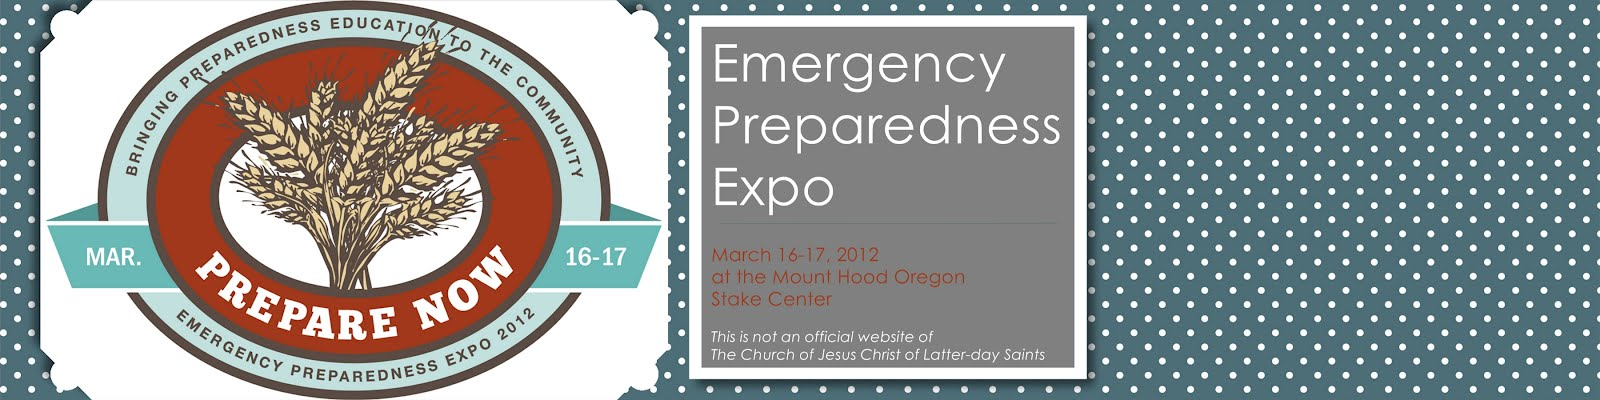 EMERGENCY PREPAREDNESS EXPO 2012